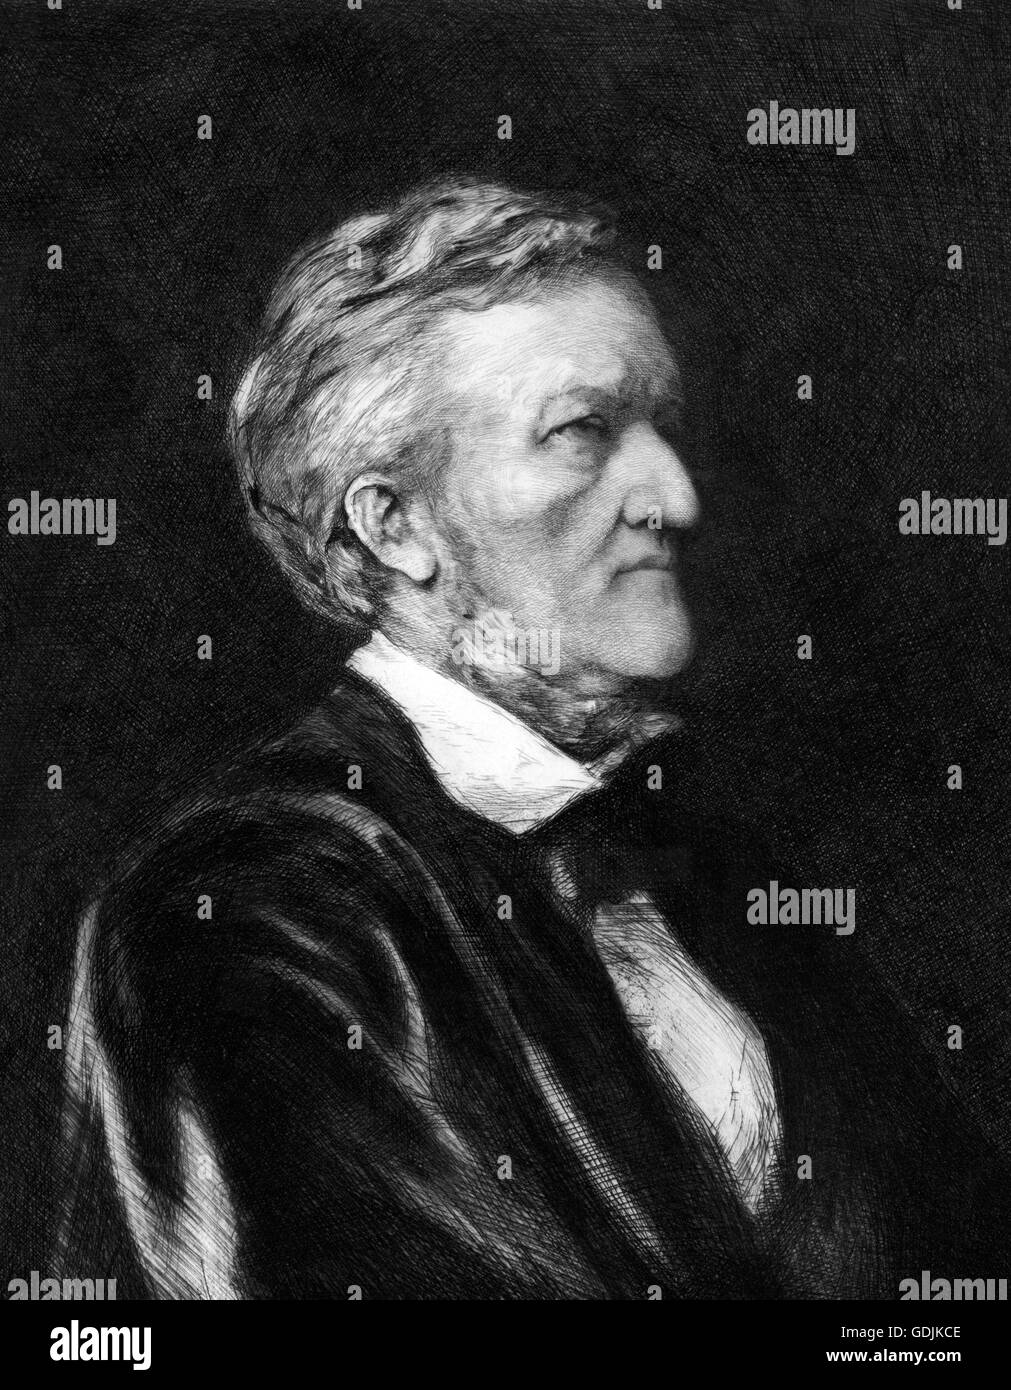 Richard Wagner. Portrait of the German composer, Wilhelm Richard Wagner (1813-1883). Etching by Hubert Herkomer, - Stock Image